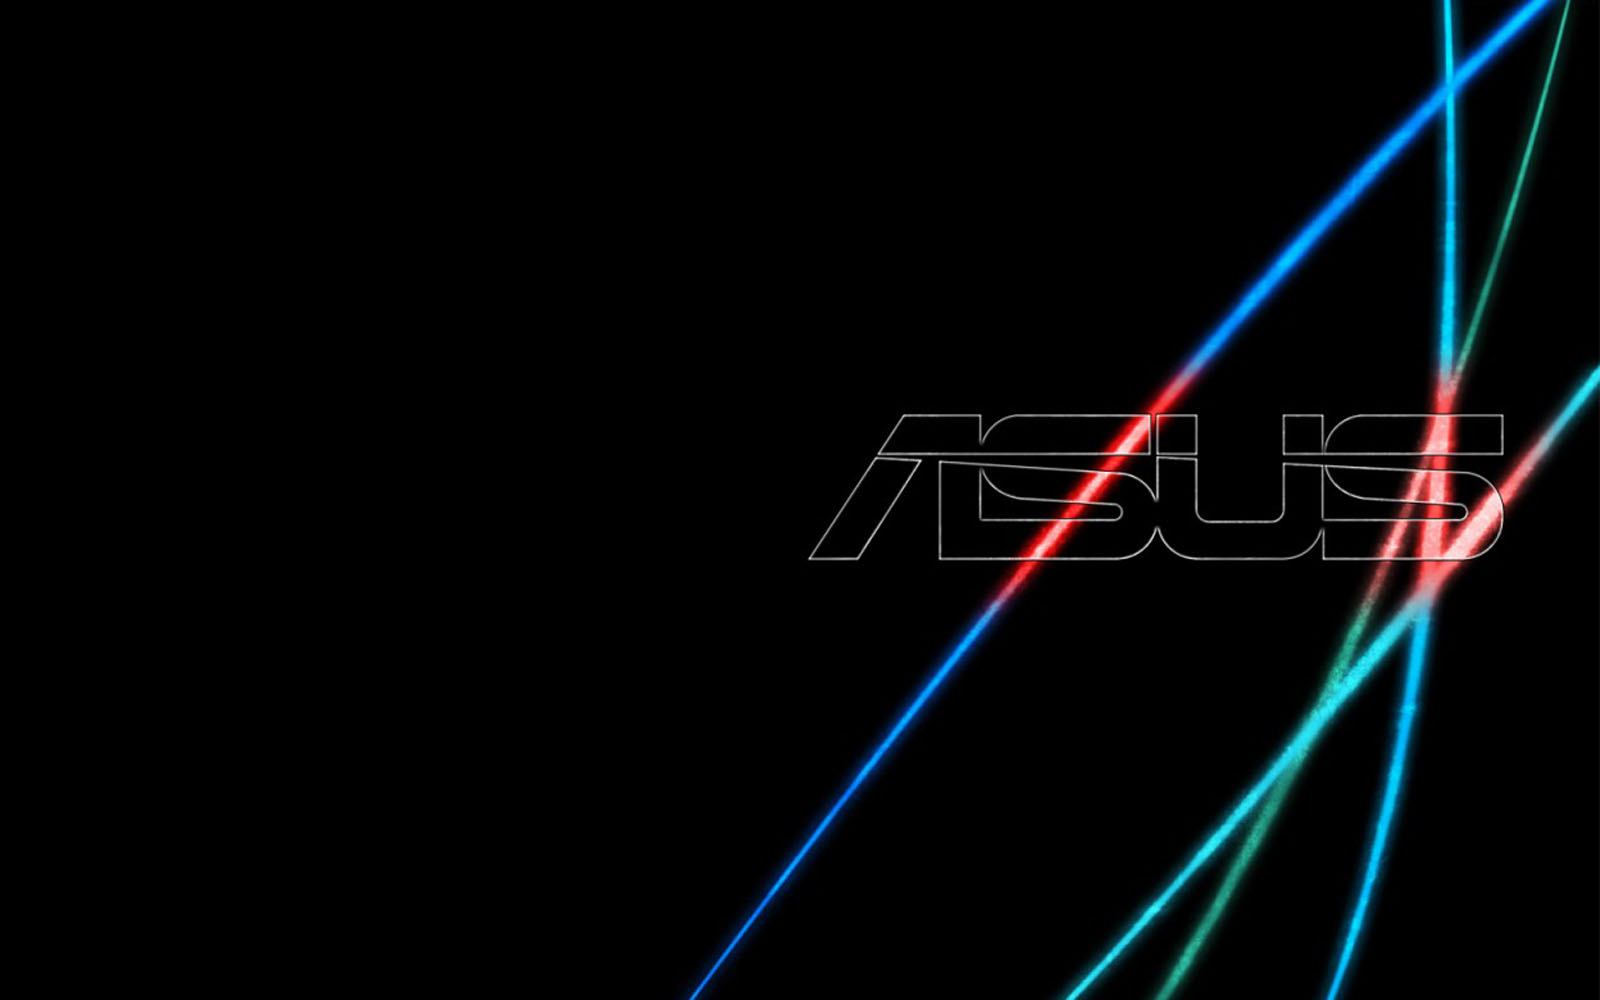 asus wallpapers - top wallpaper desktop